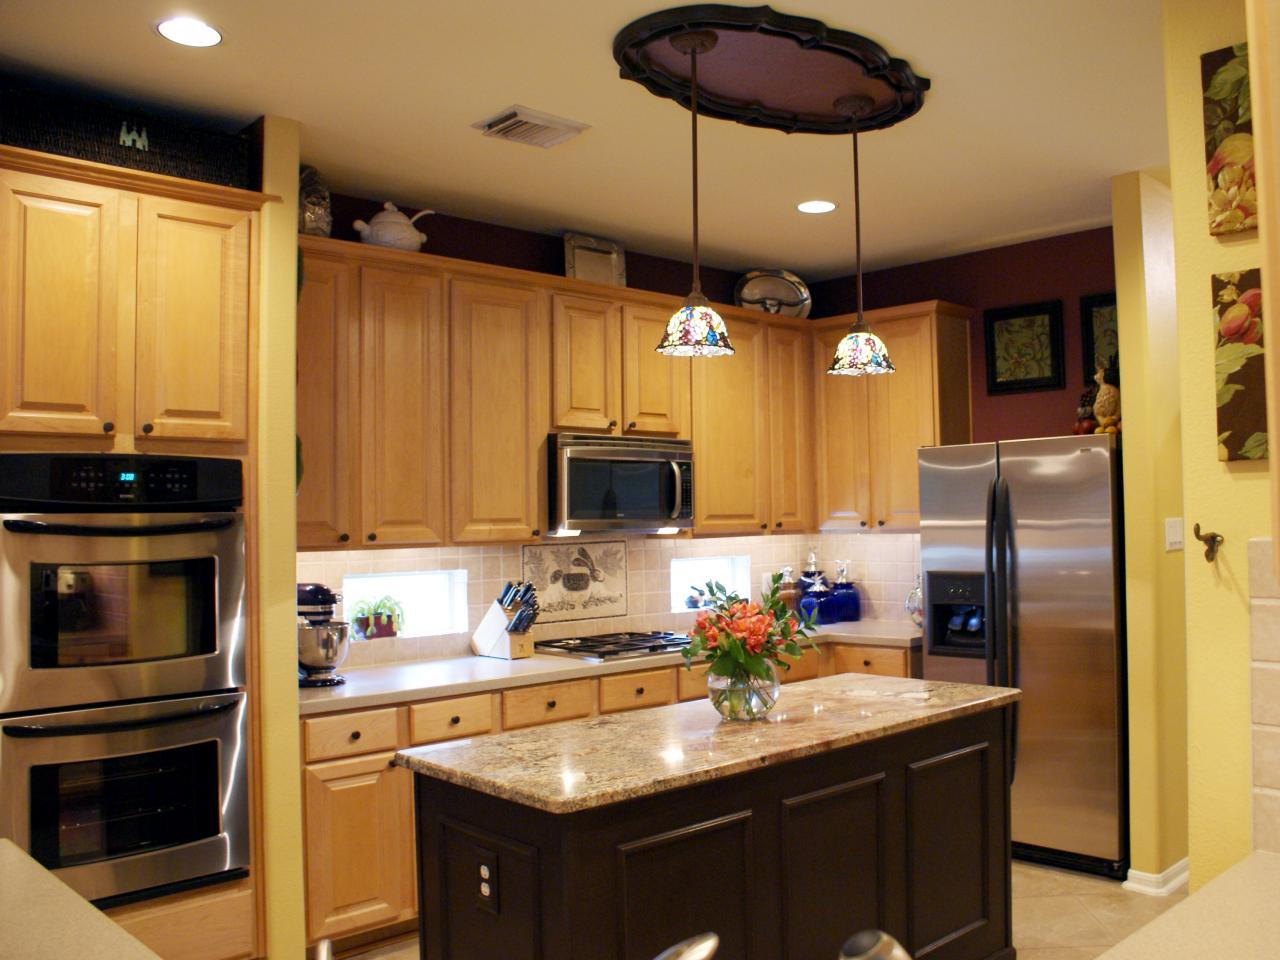 Replacing Kitchen Cabinets On A Budget Cabinets Should You Replace Or Reface Diy